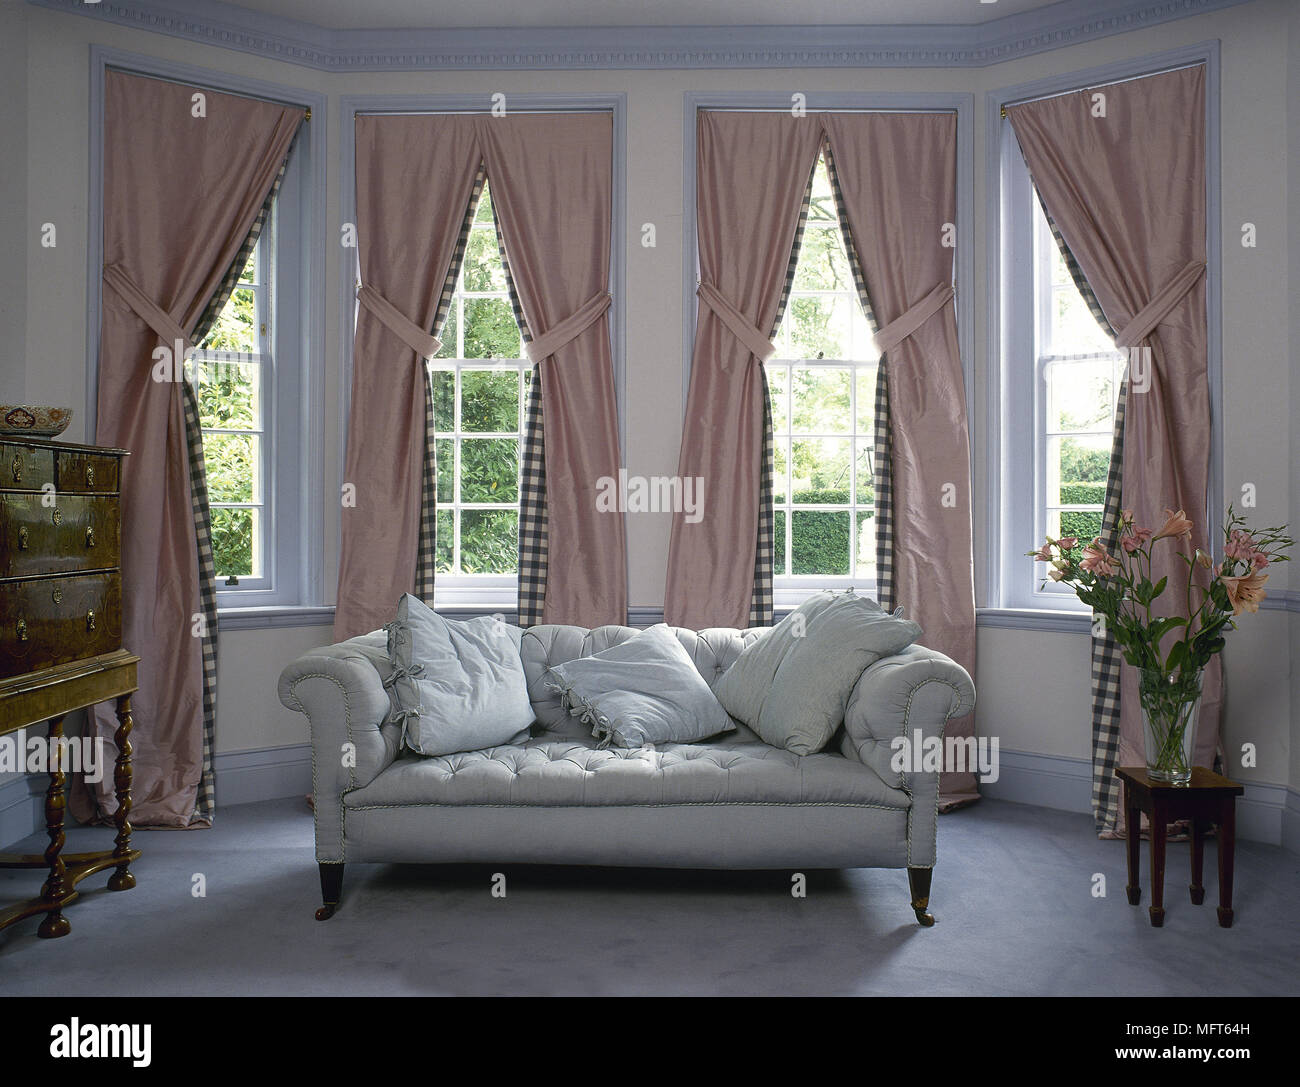 Upholstered Sofa Set In Georgian Bay Window Dressed With Pink Curtains,